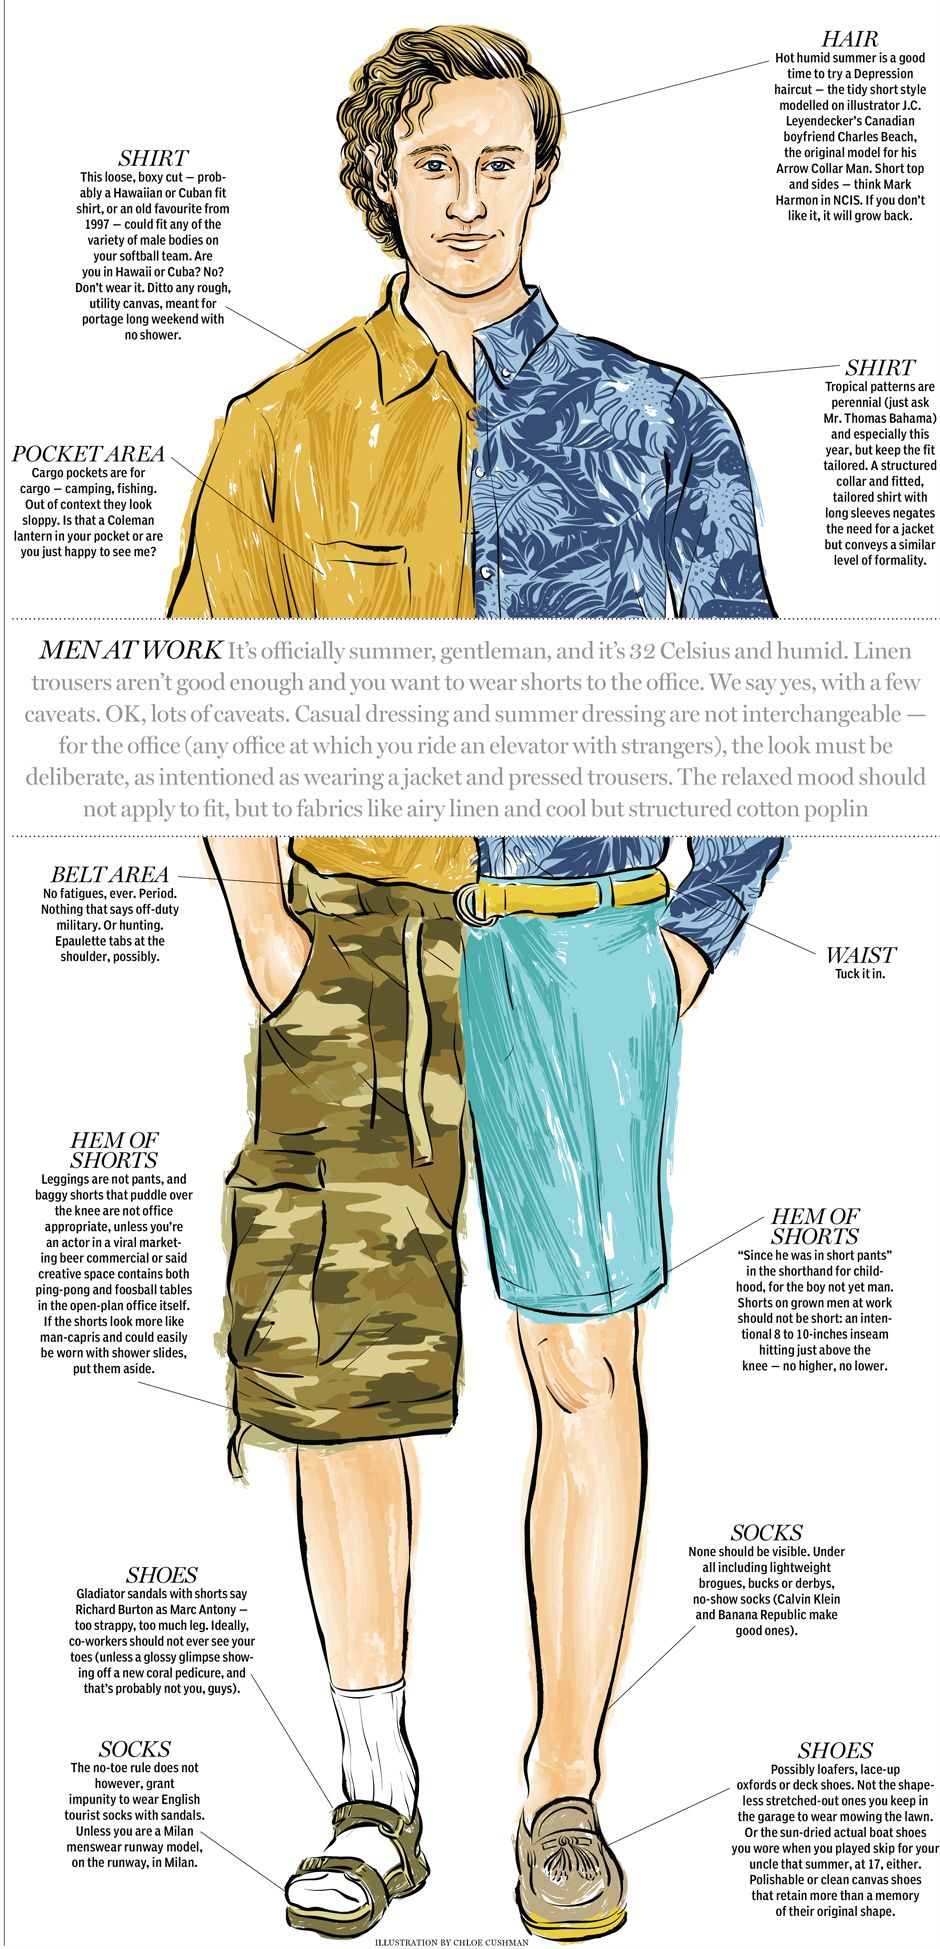 e5de8b3be6f Men at Work  The How-to of wearing shorts to the office. Because summer  dressing is a minefield for the guys.  menswear